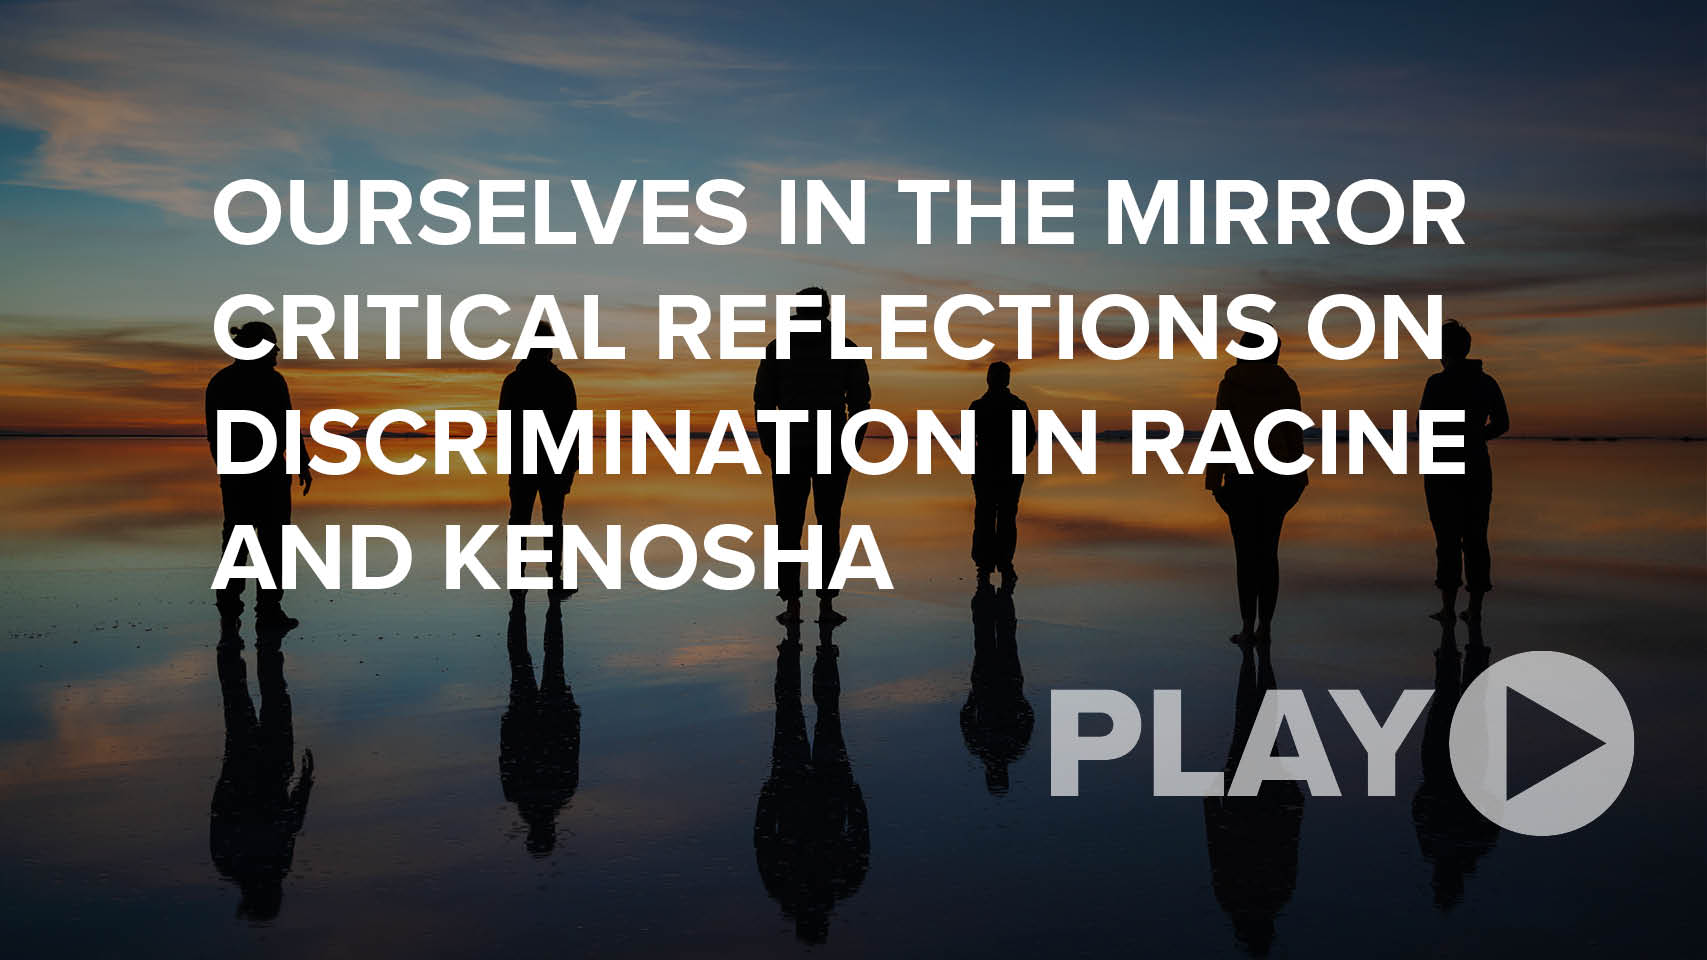 Ourselves in the Mirror Critical Reflections on Discrimination in Racine and Kenosha